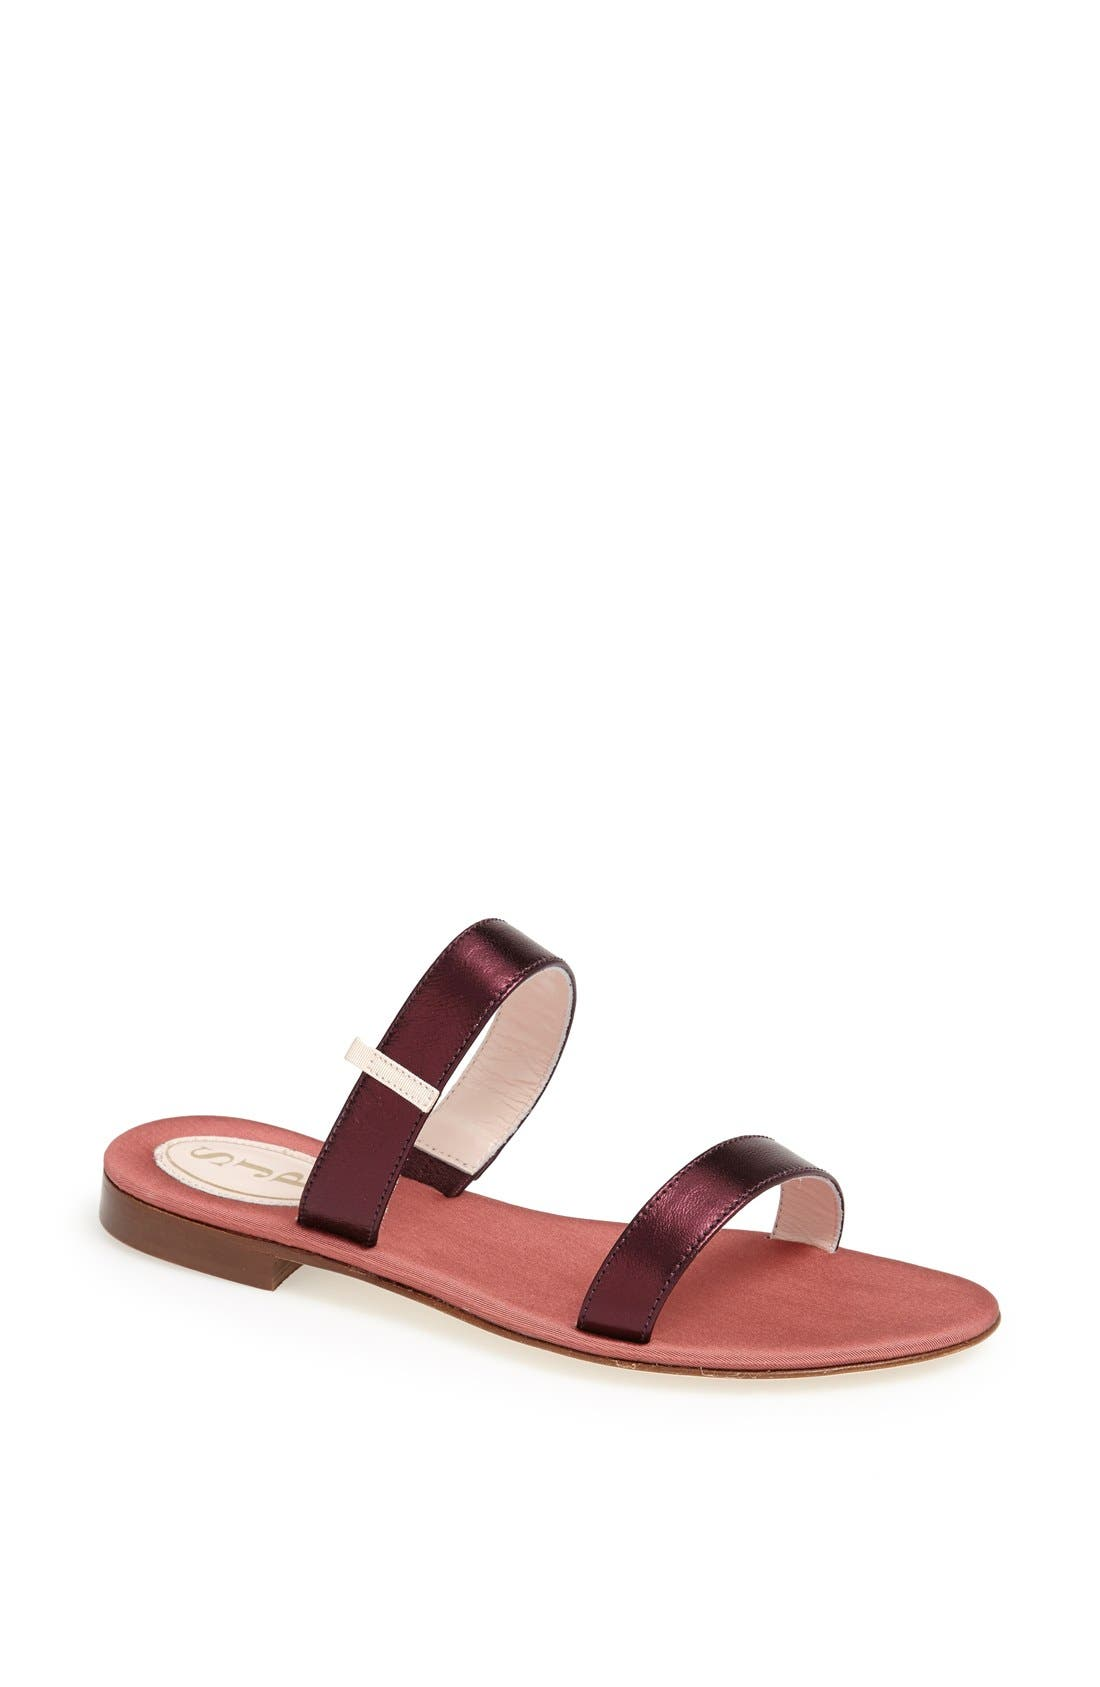 Main Image - SJP 'Wallace' Sandal (Nordstrom Exclusive)